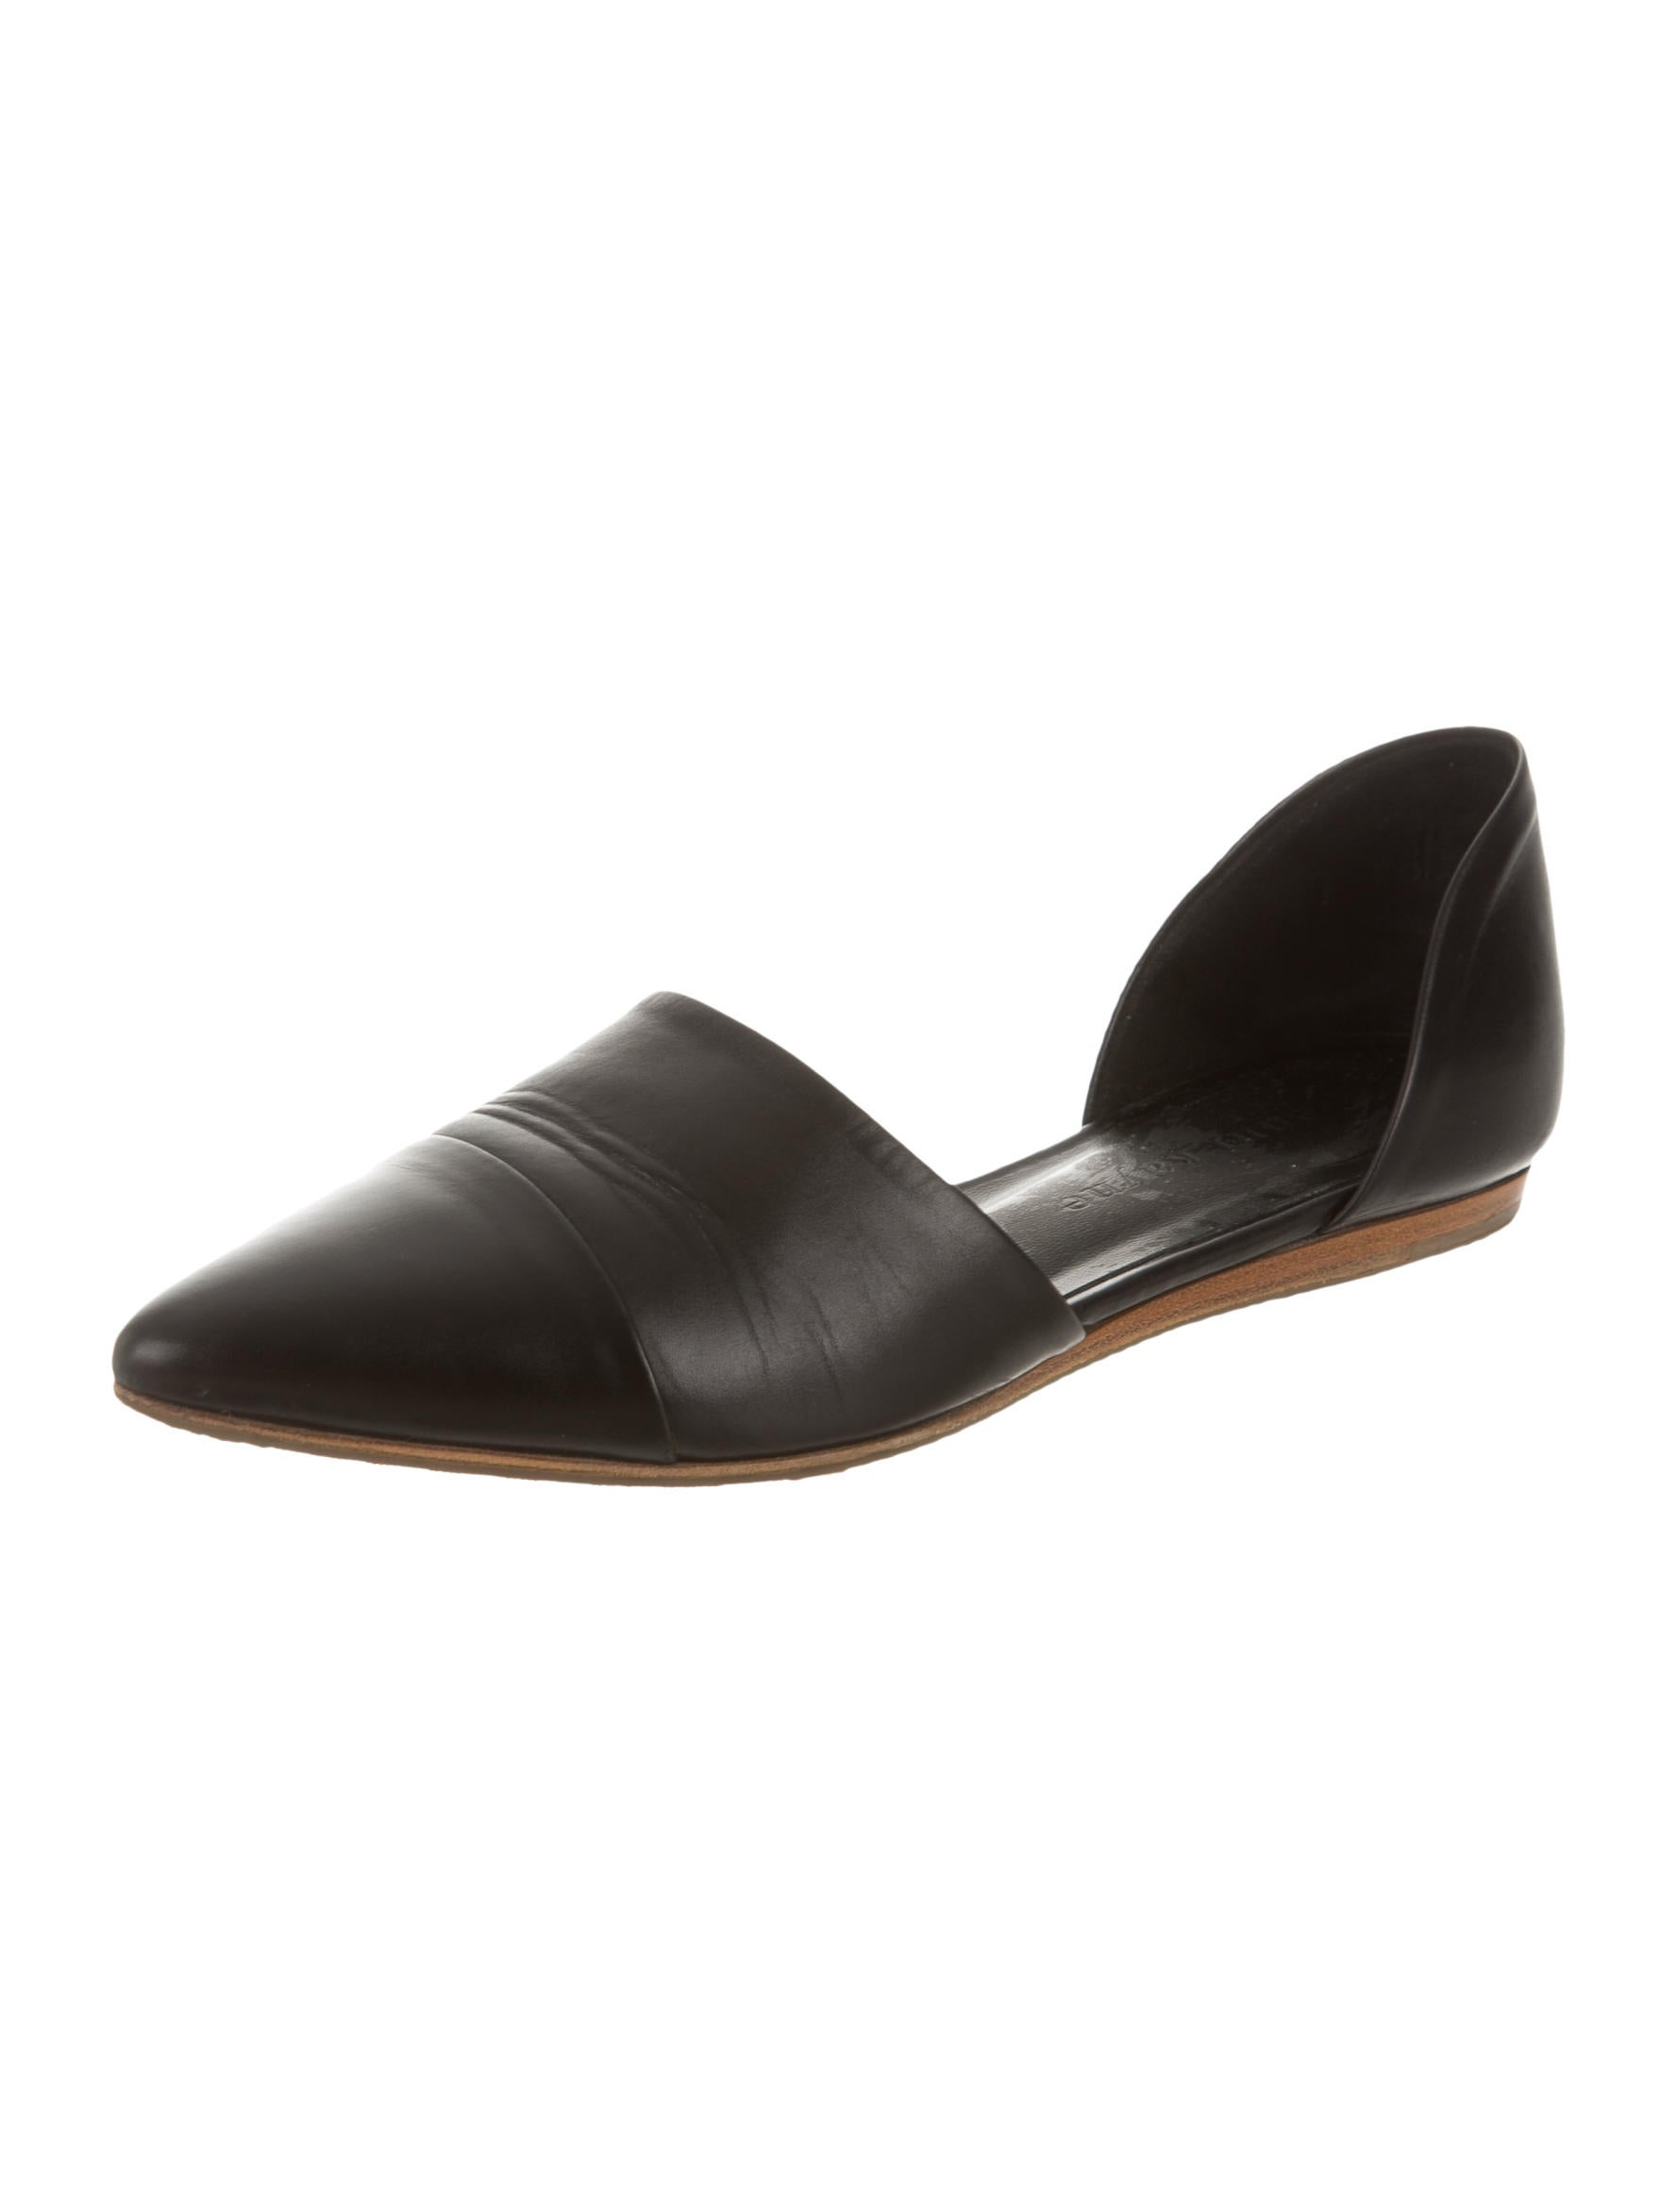 kayne leather pointed toe flats shoes wjk23397